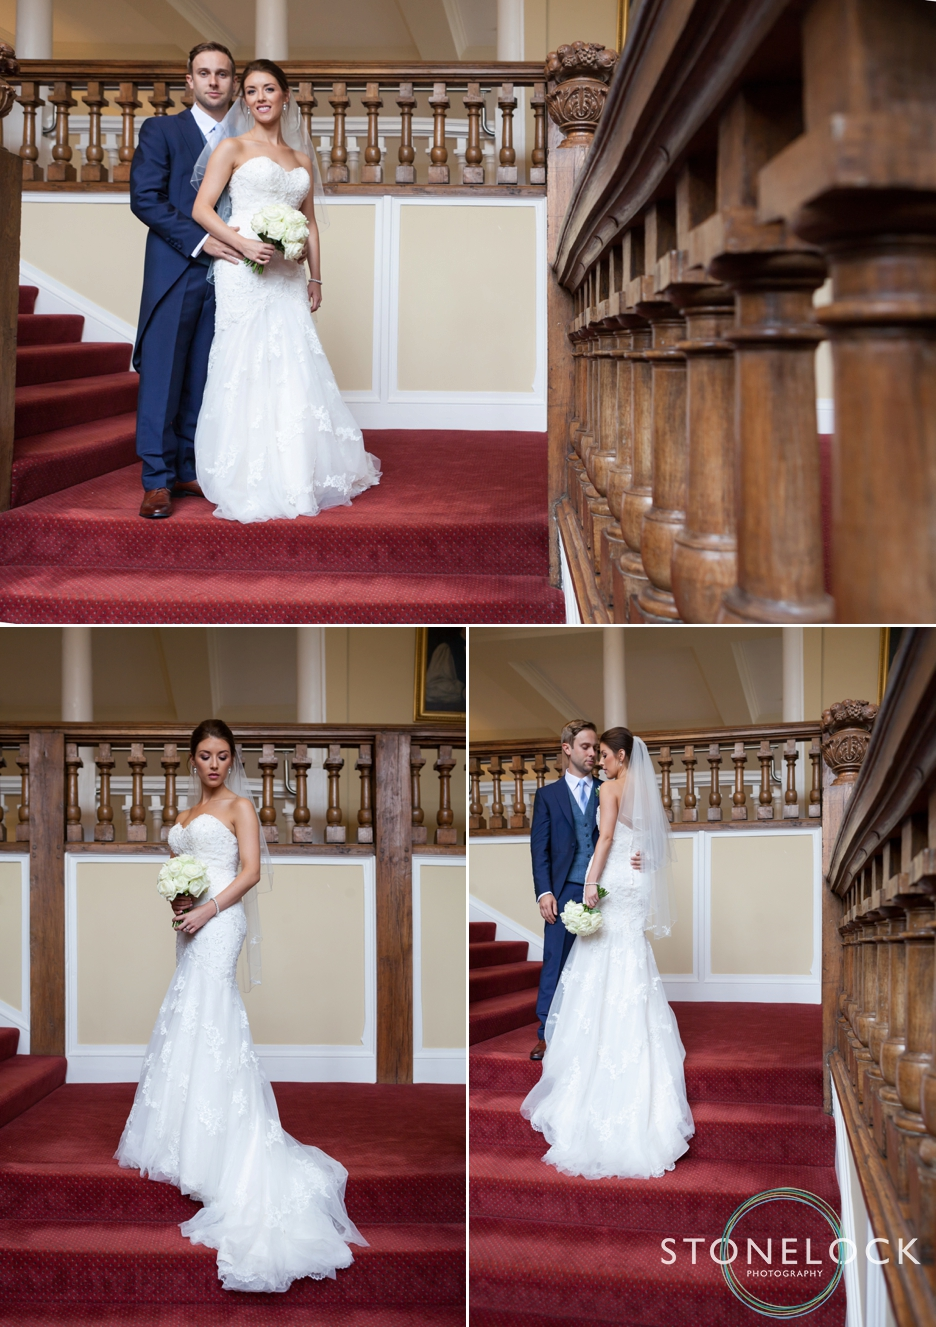 Farnham Castle, Surrey, Wedding photography, bride & groom portrait photo on stairs